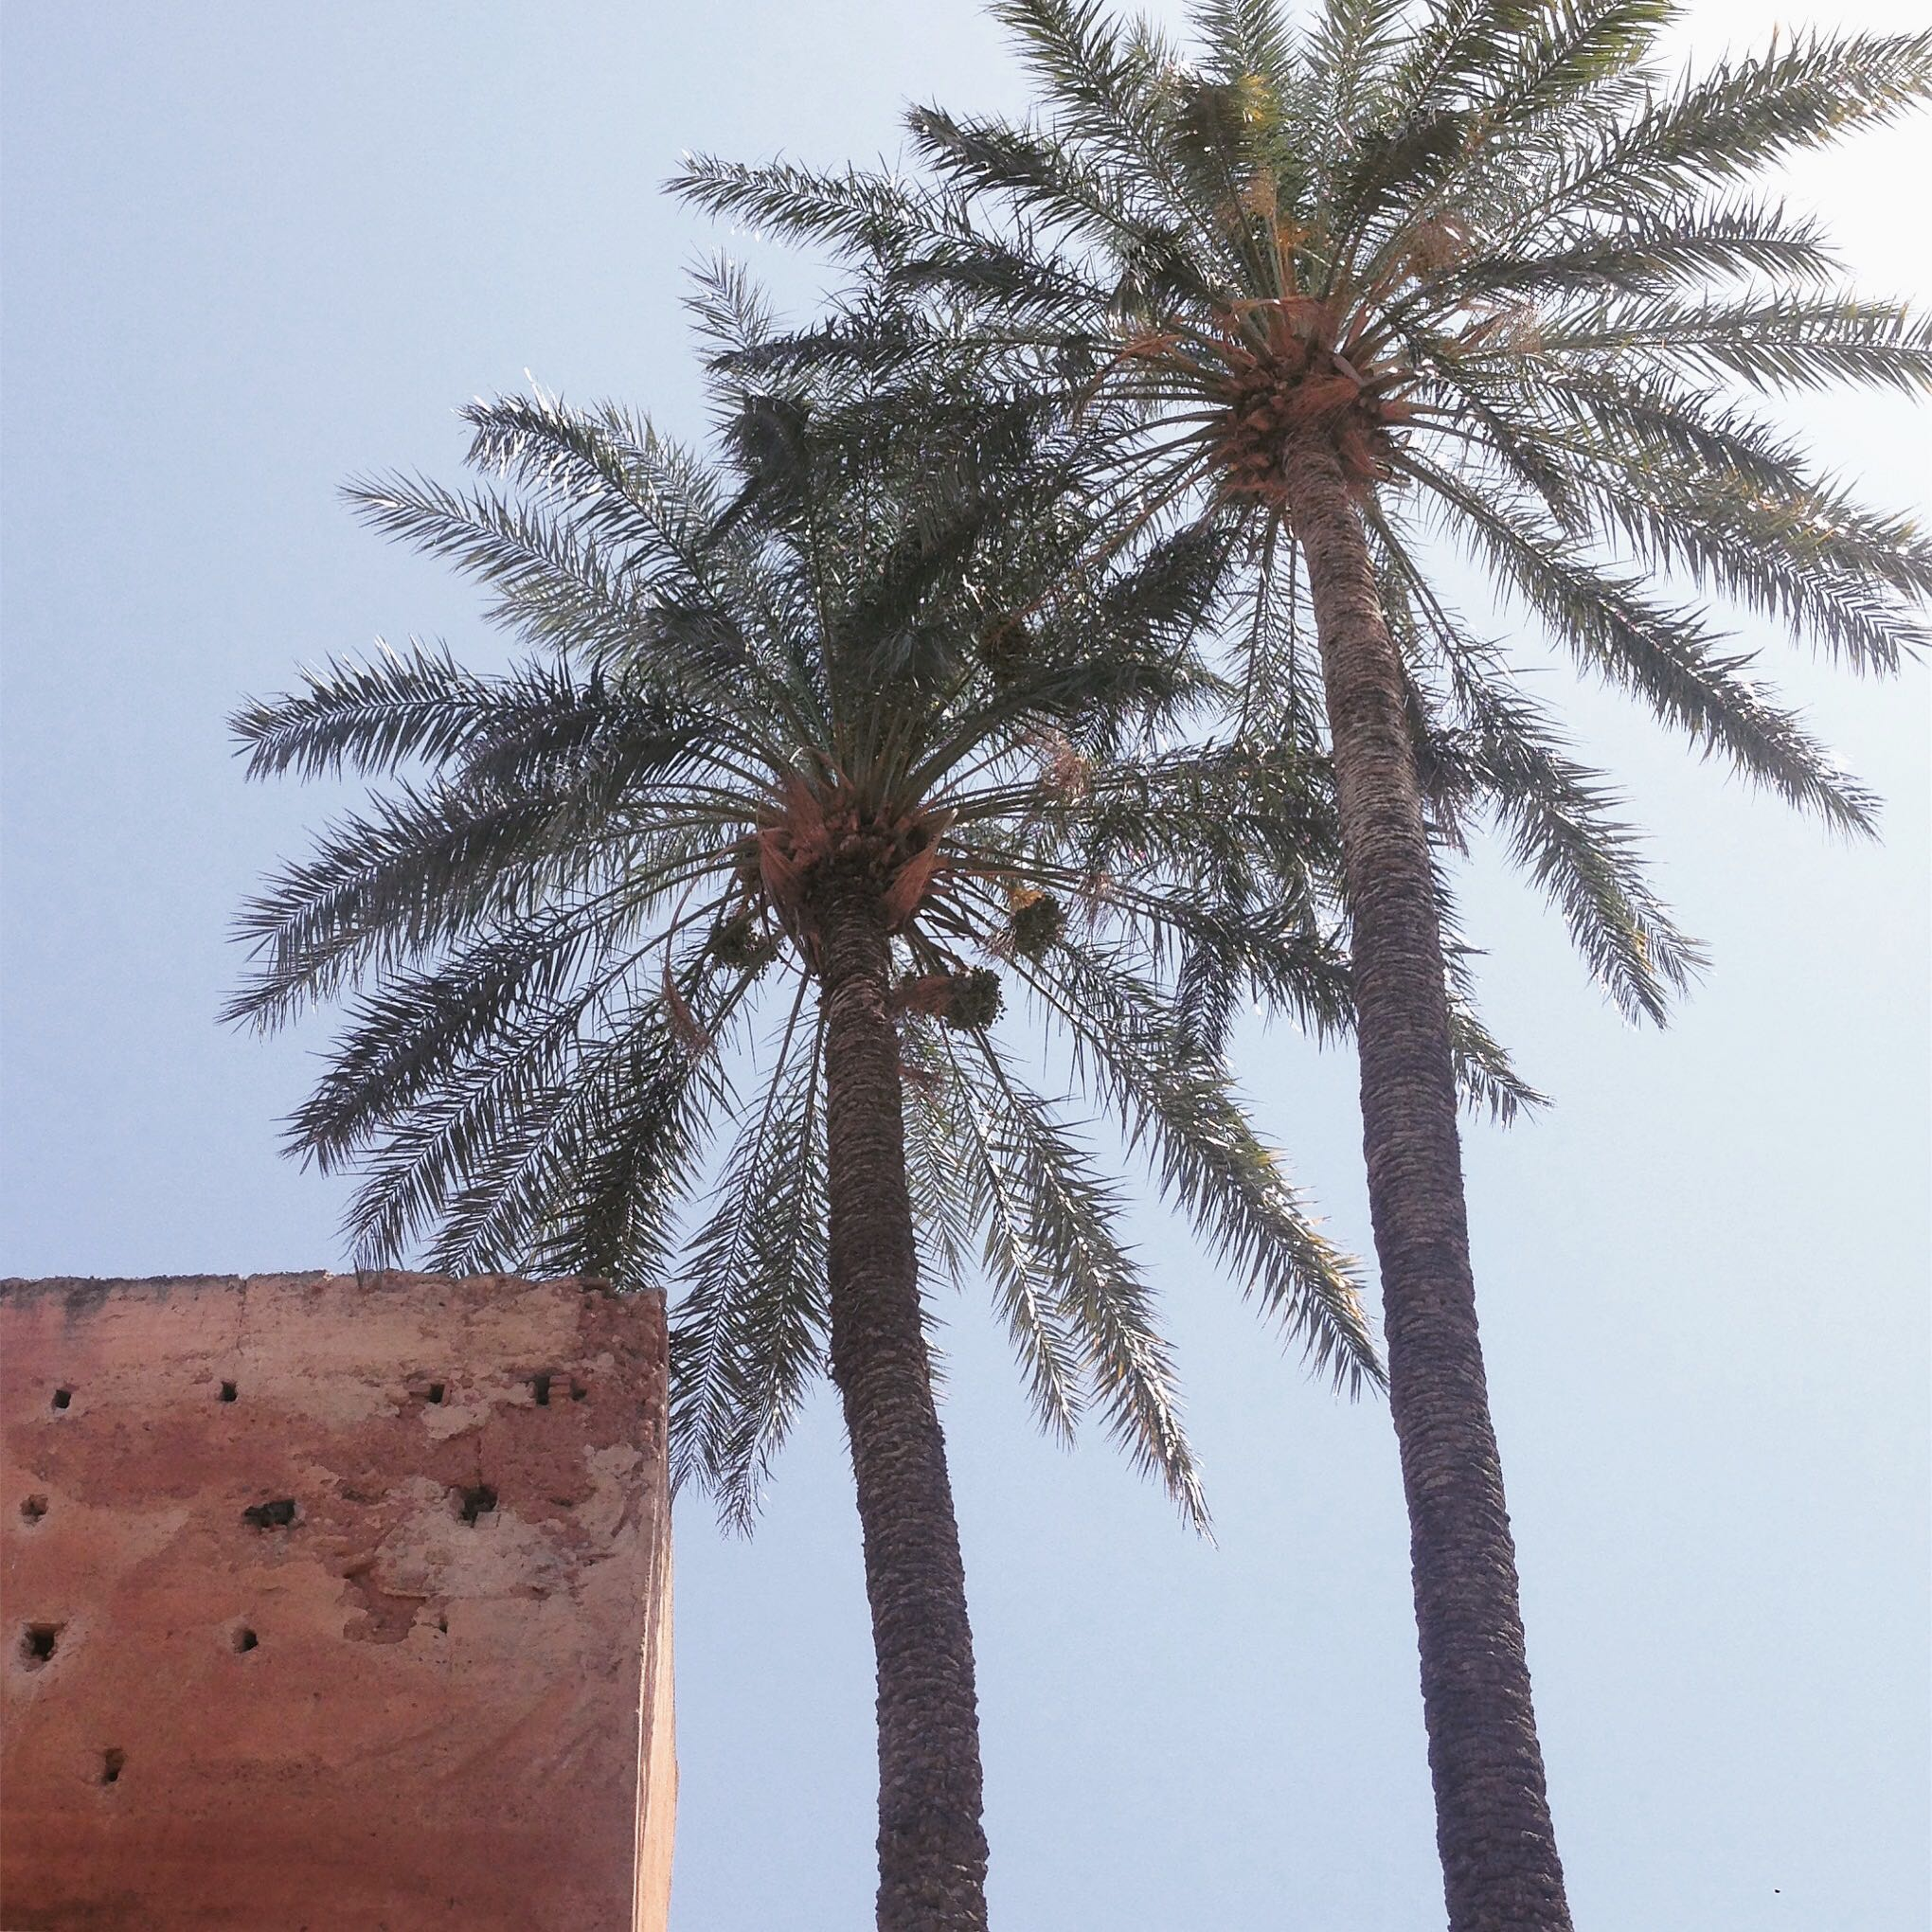 Lozidaze_Marrakesh-Palm-Trees_01